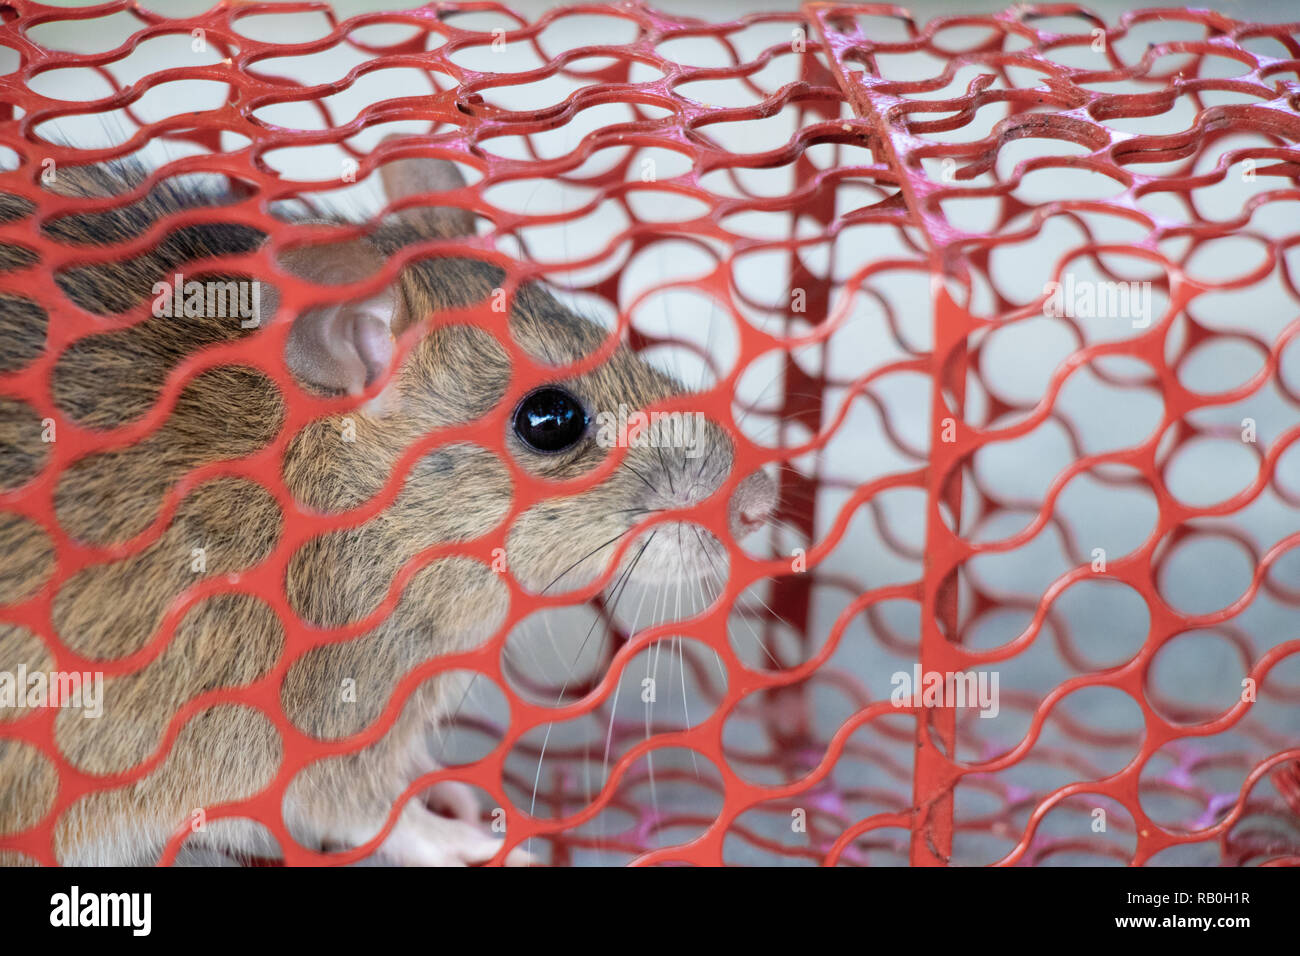 mouse or rat trapped in a red cage - Stock Image